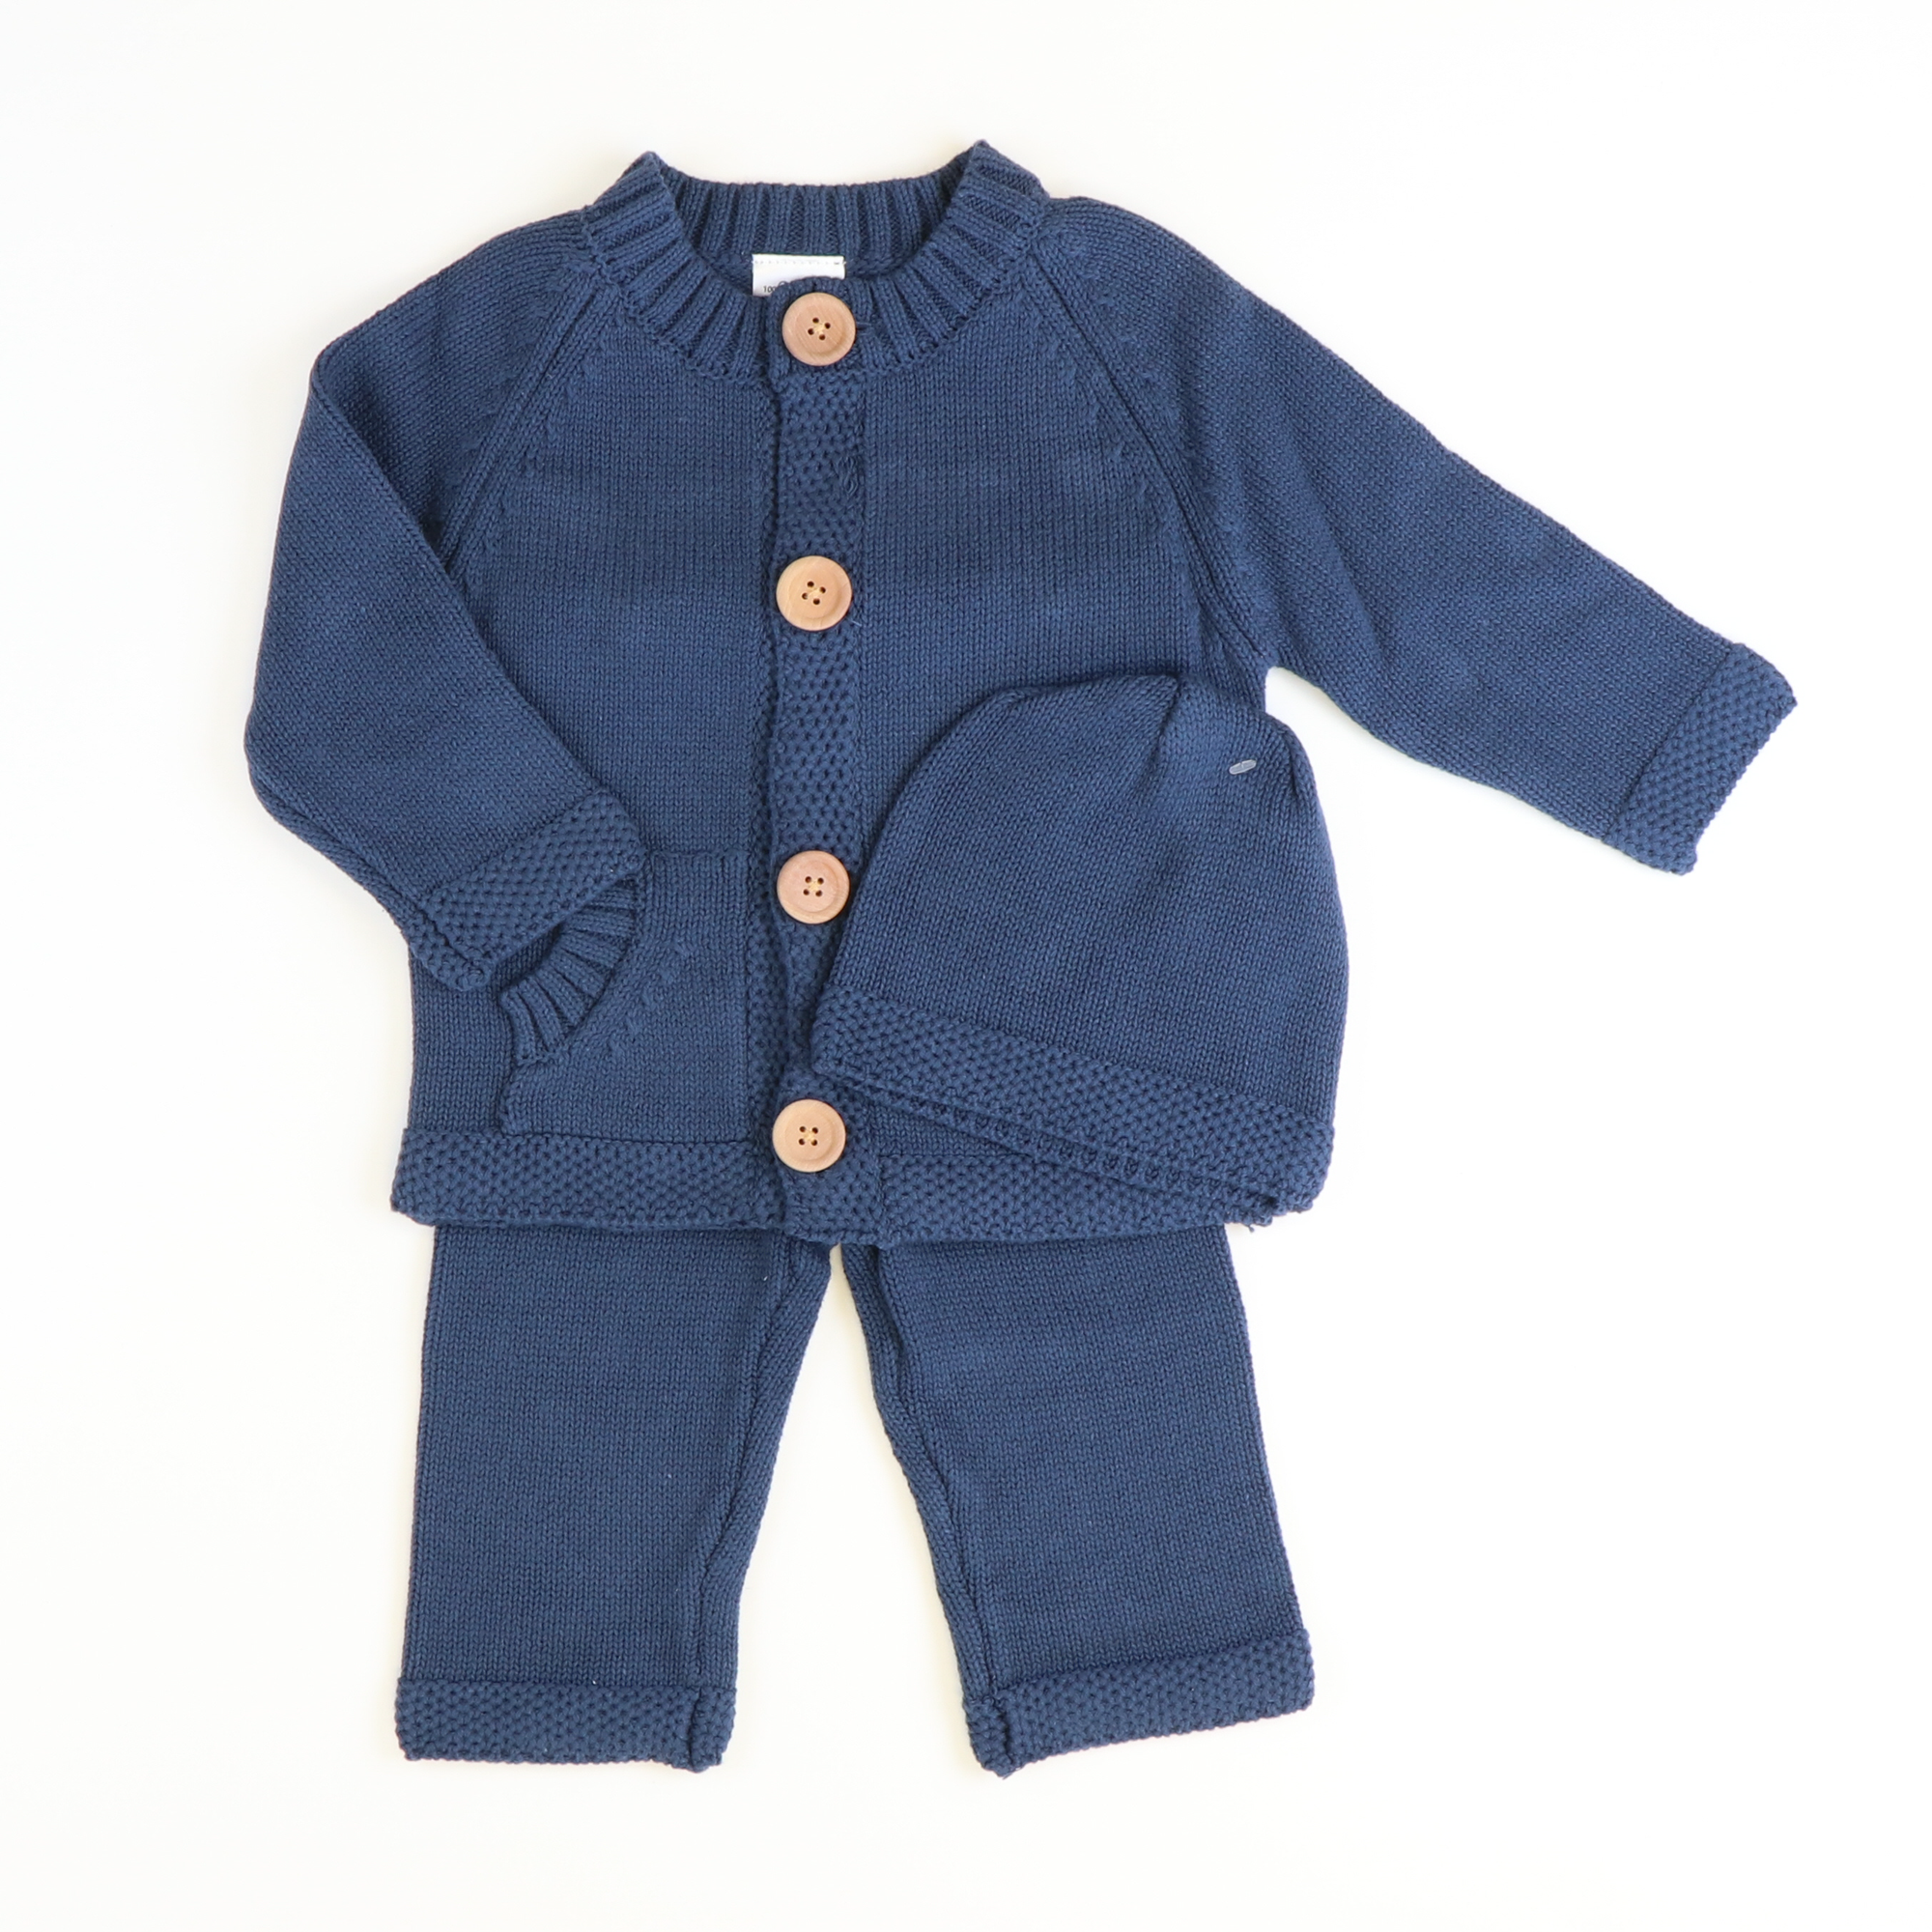 Navy Cardigan, Hat, & Pants Set